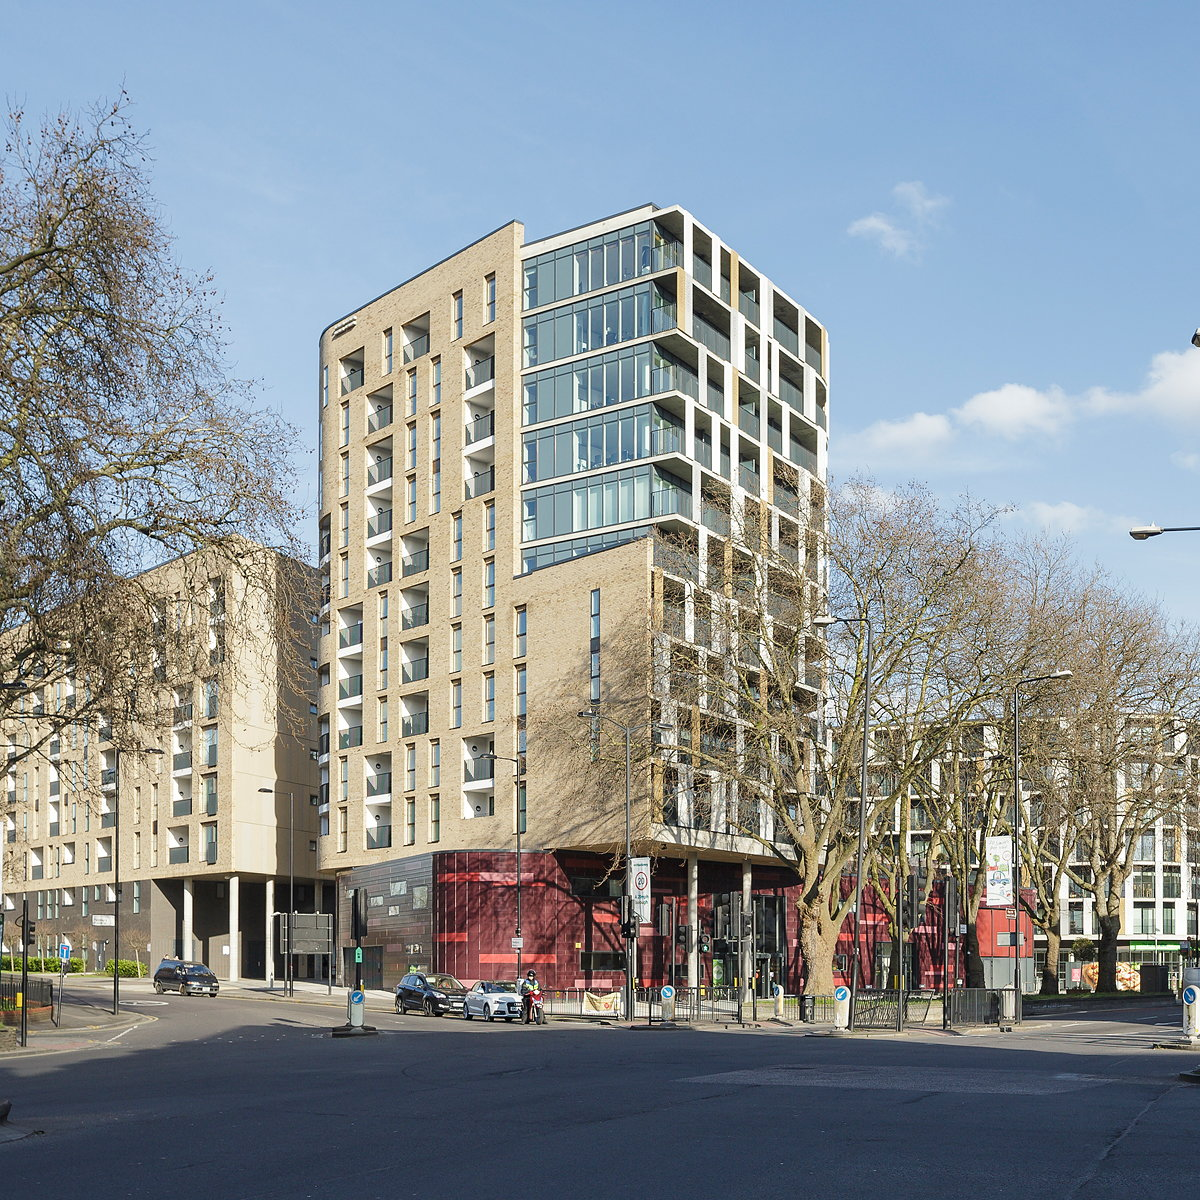 Pembury Circus Named Best Mixed Use Development at 2016 LEAF Awards